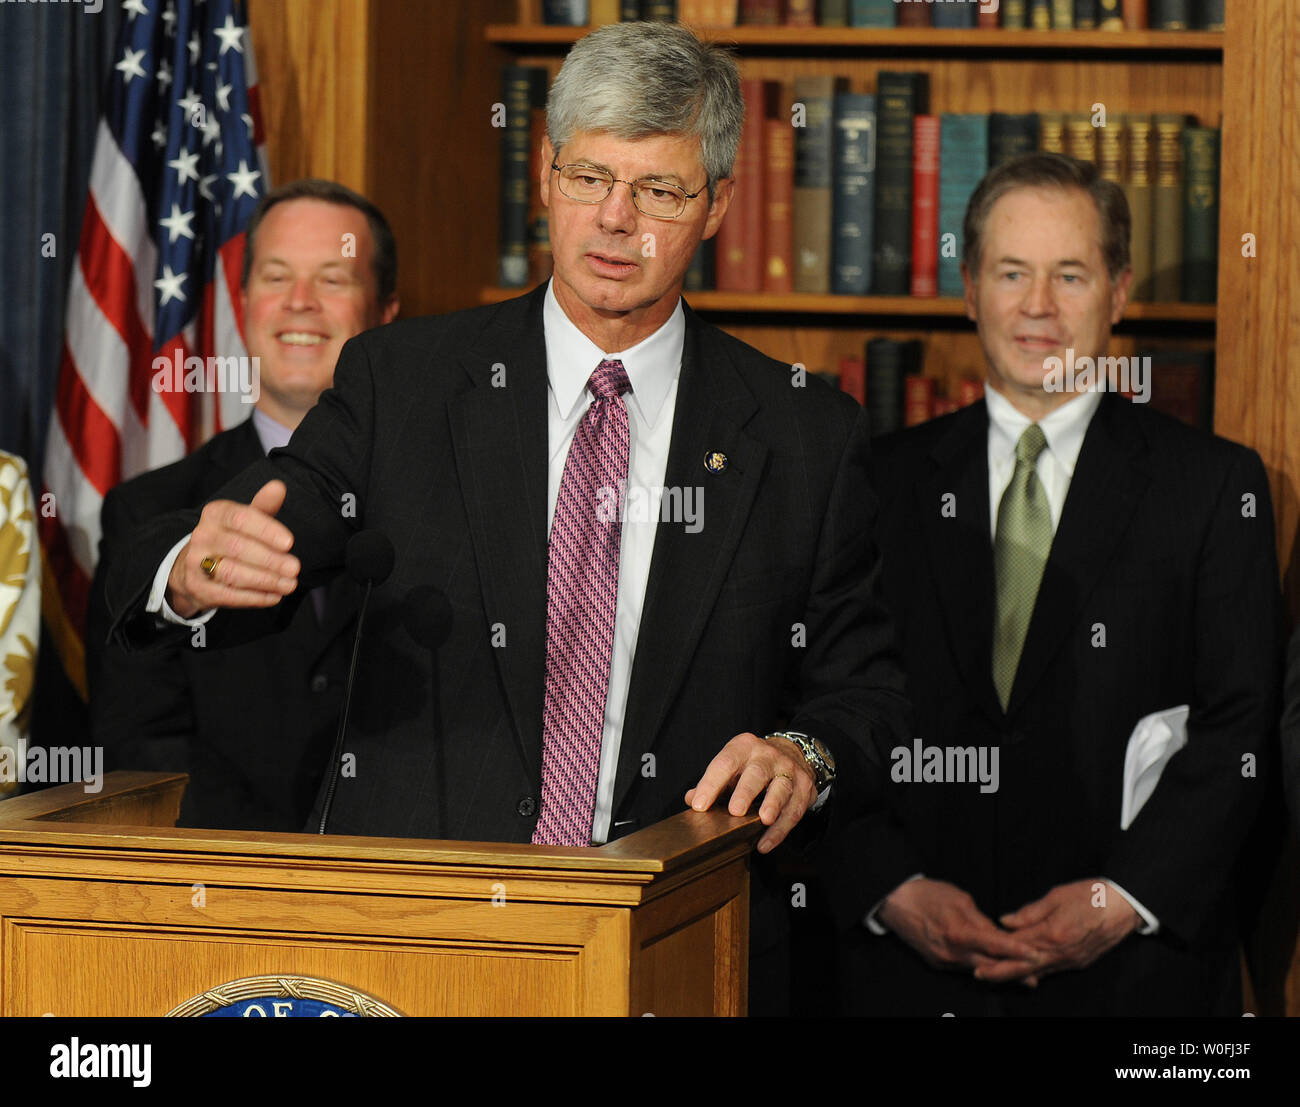 Rep. Bart Stupak (D-MI) speaks on an executive order that prohibits government funding for abortions during a press conference on Capitol Hill in Washington on March 21, 2010. Stupak said with this agreement the House now has enough votes to pass the heath care reform bill   UPI/Kevin Dietsch Stock Photo